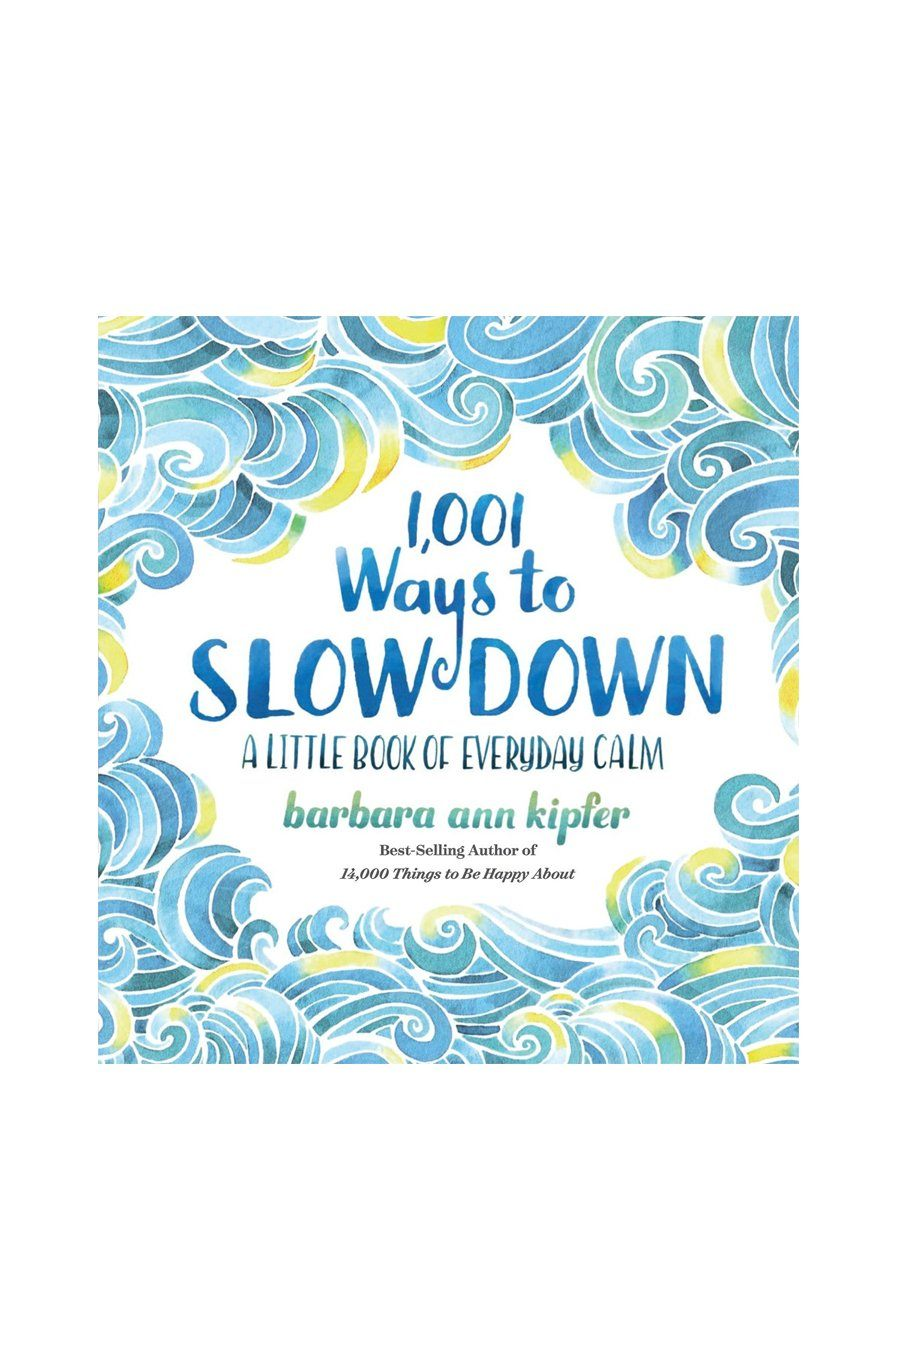 1,001 Way to Slow Down | Hardcover Book - Shore